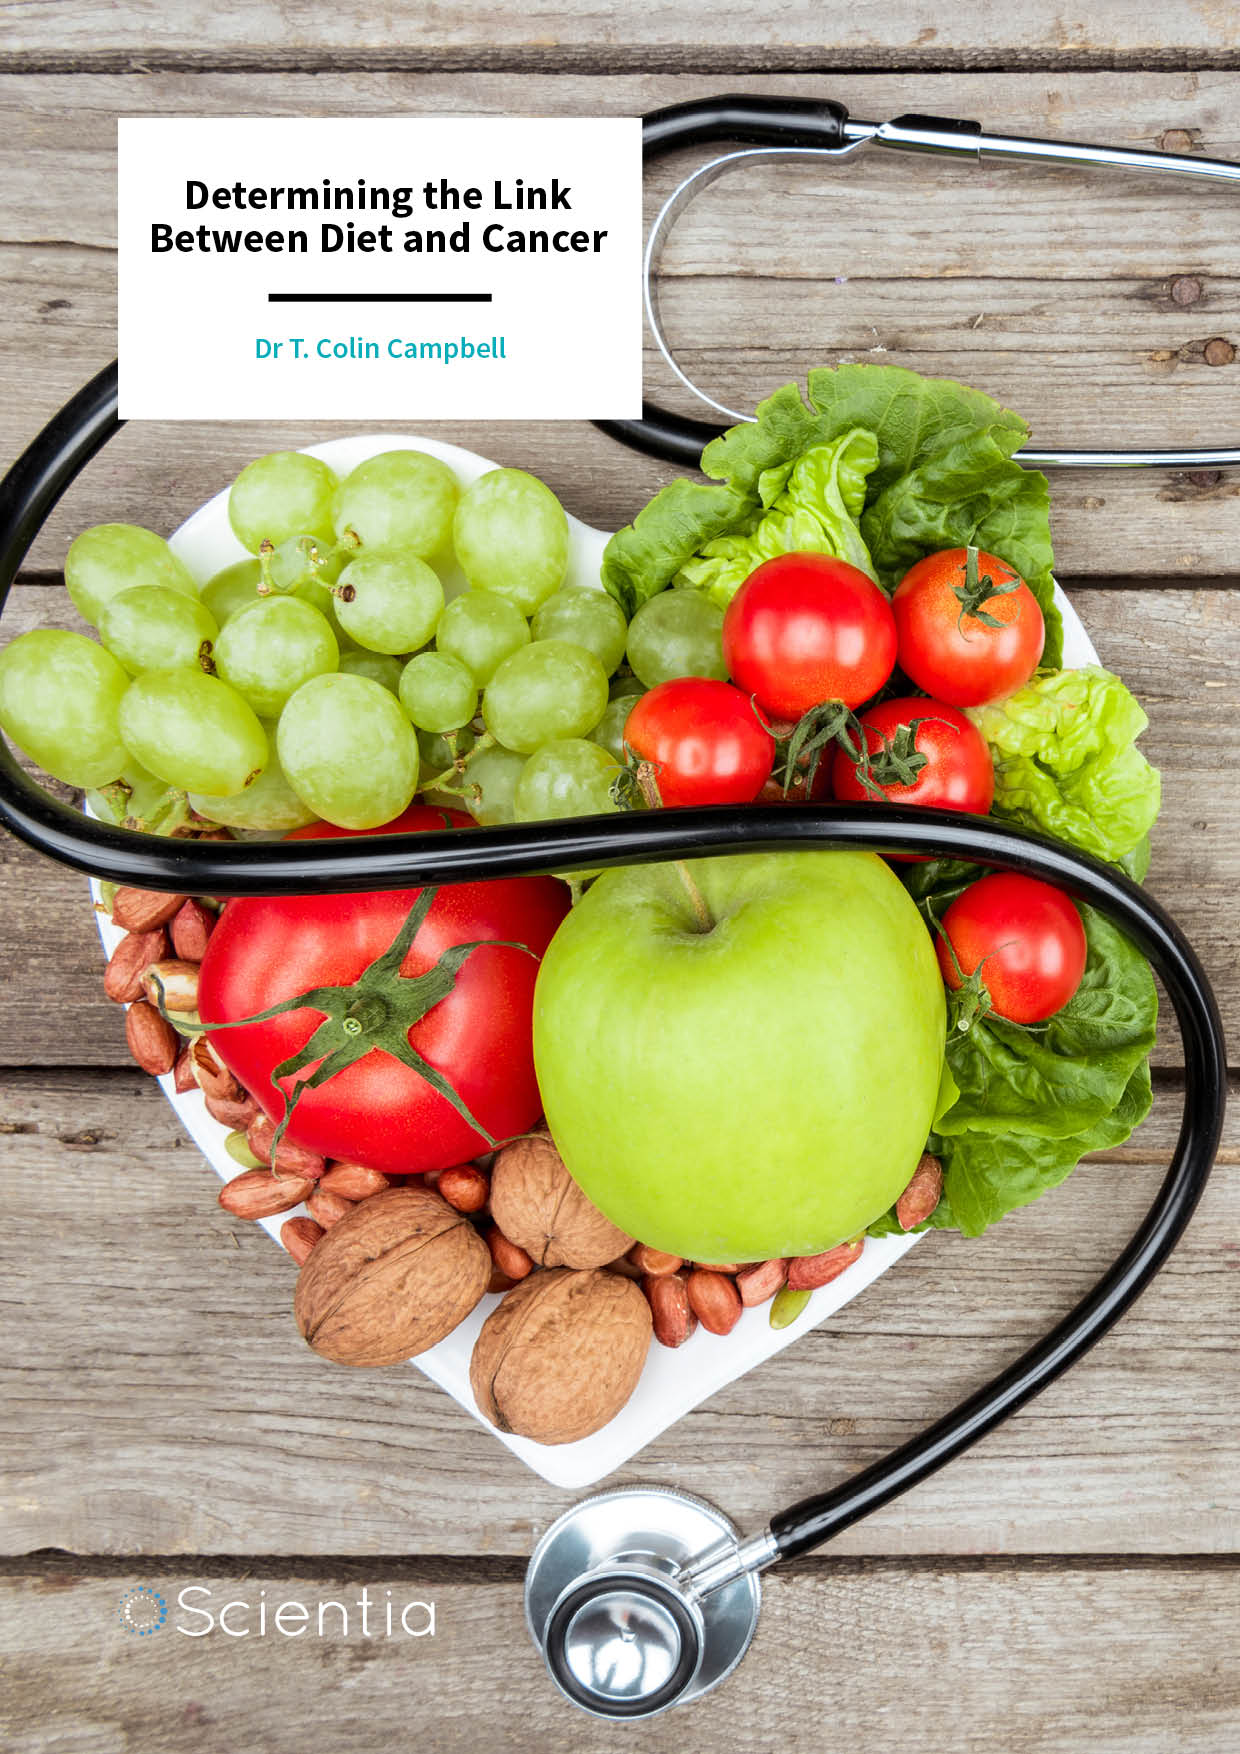 Dr T. Colin Campbell – Determining the Link Between Diet and Cancer